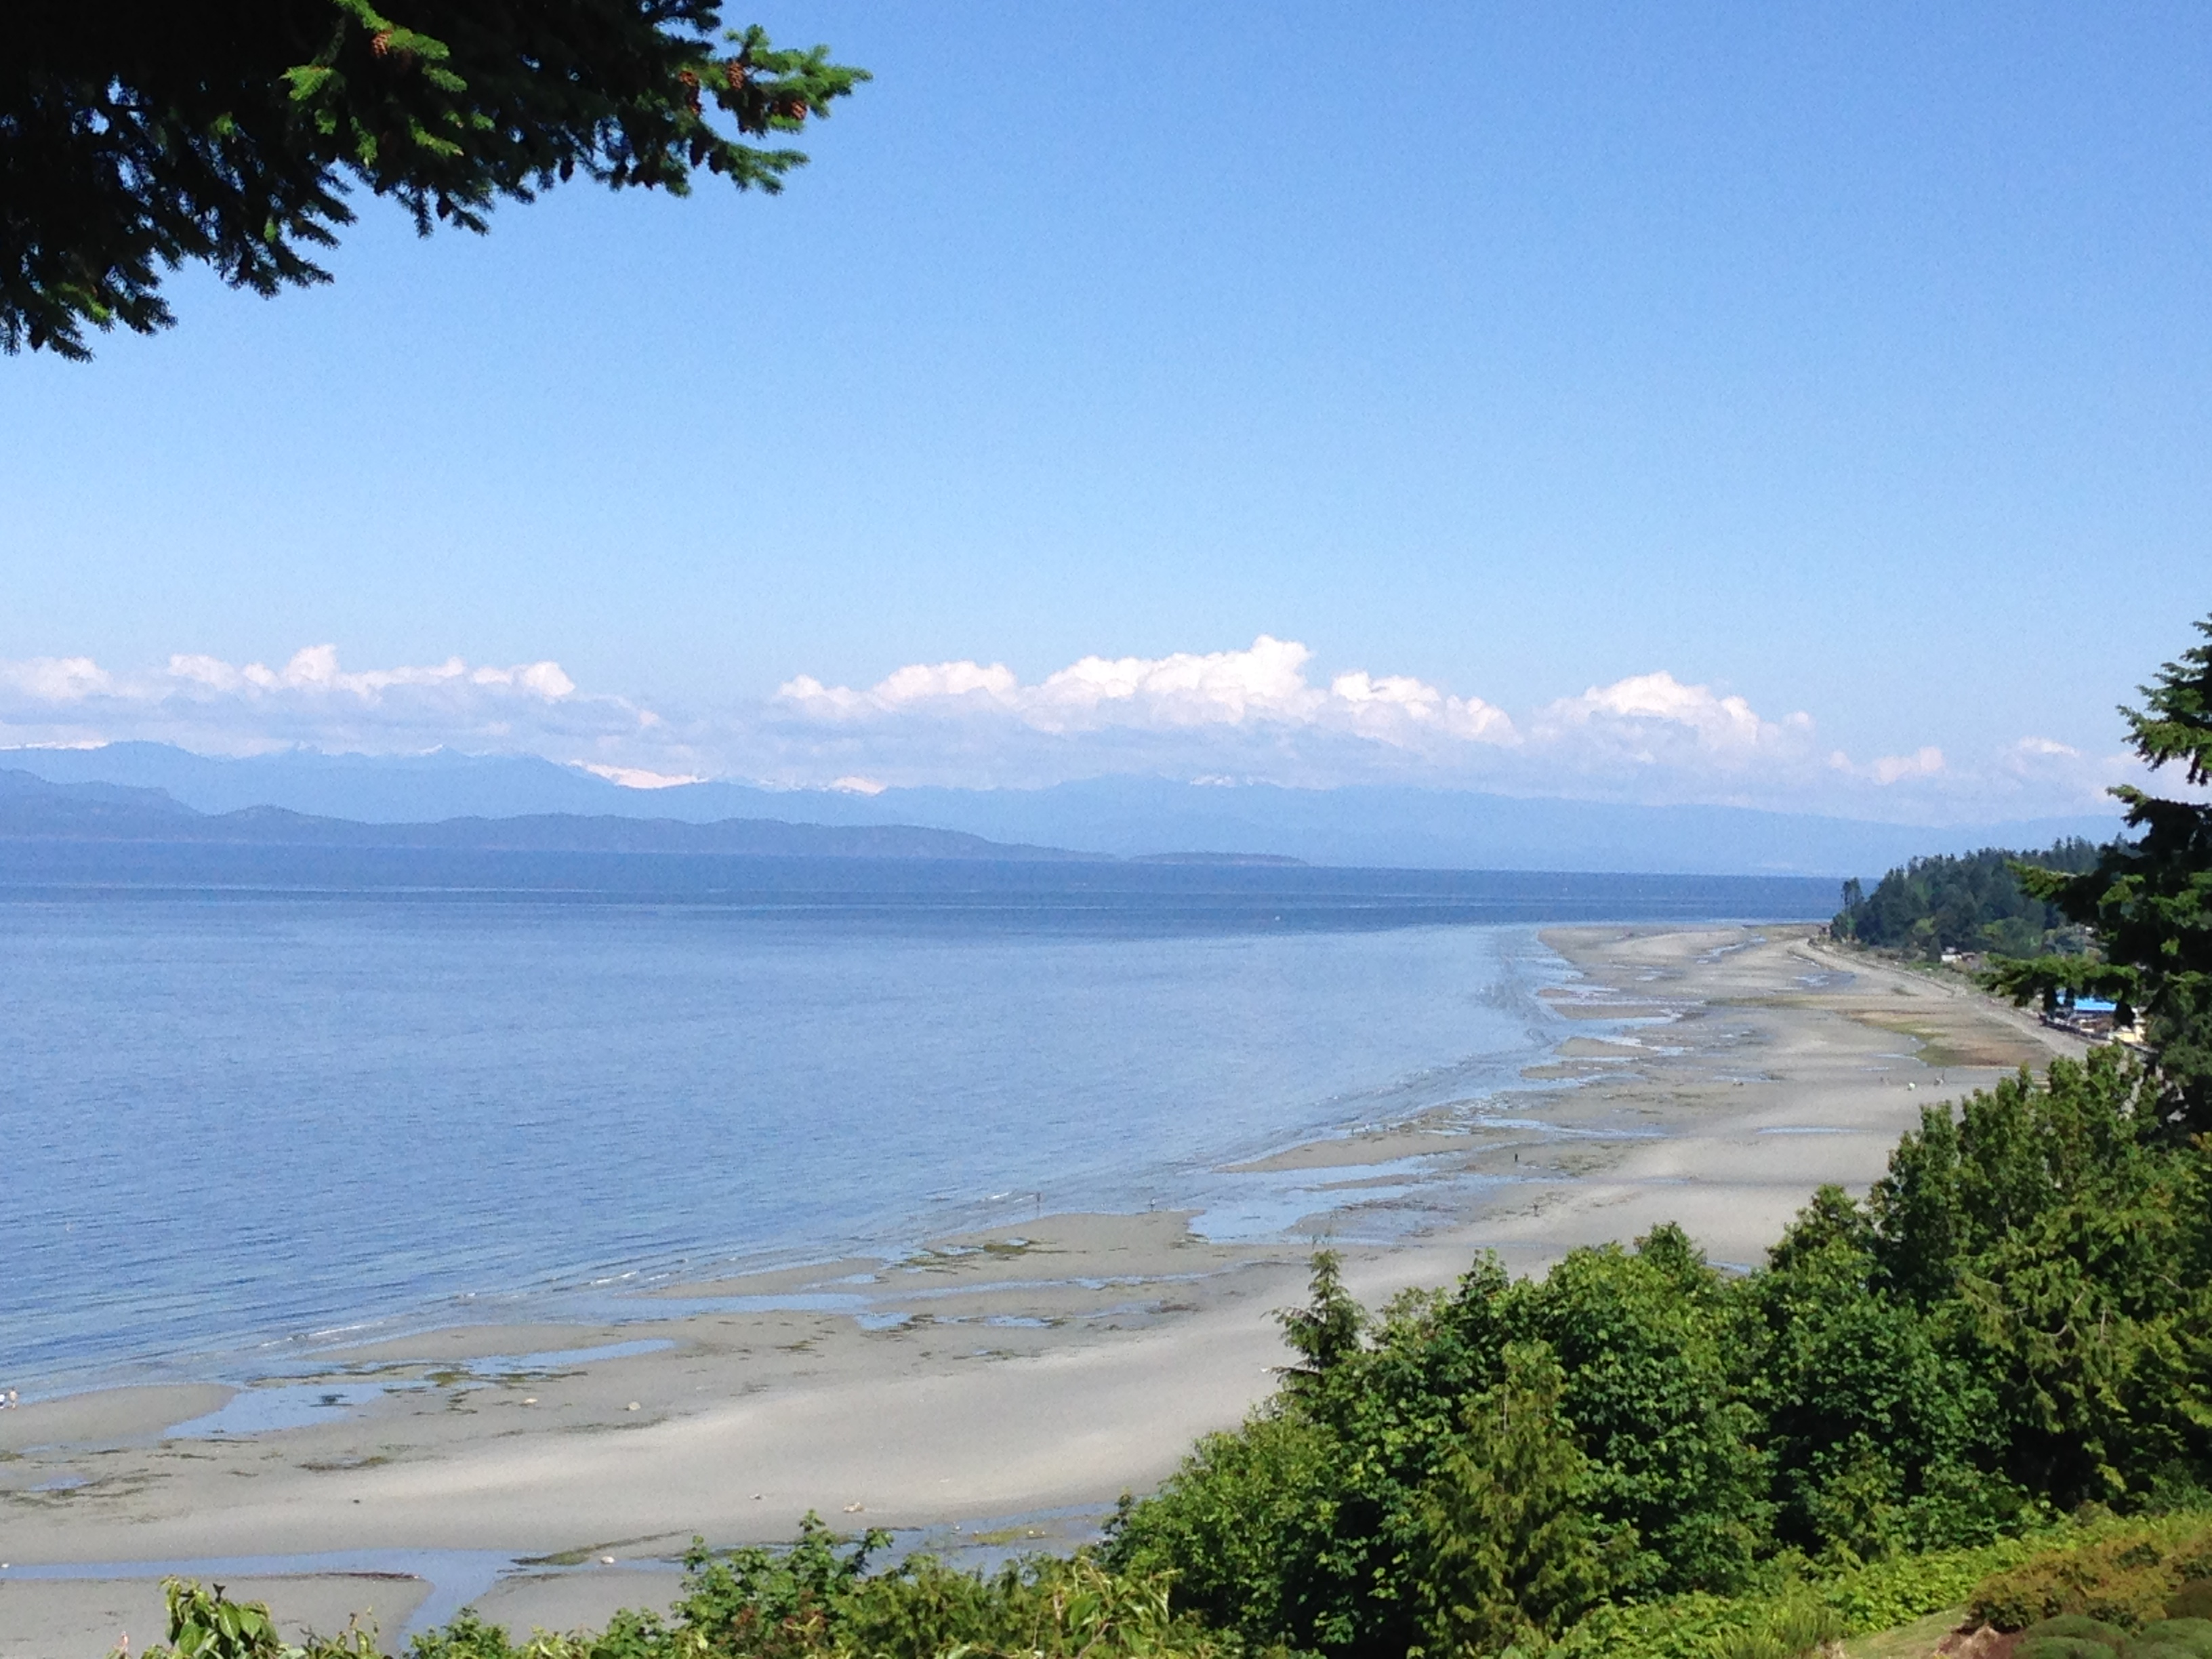 QUALICUM'S BEACH TODAY